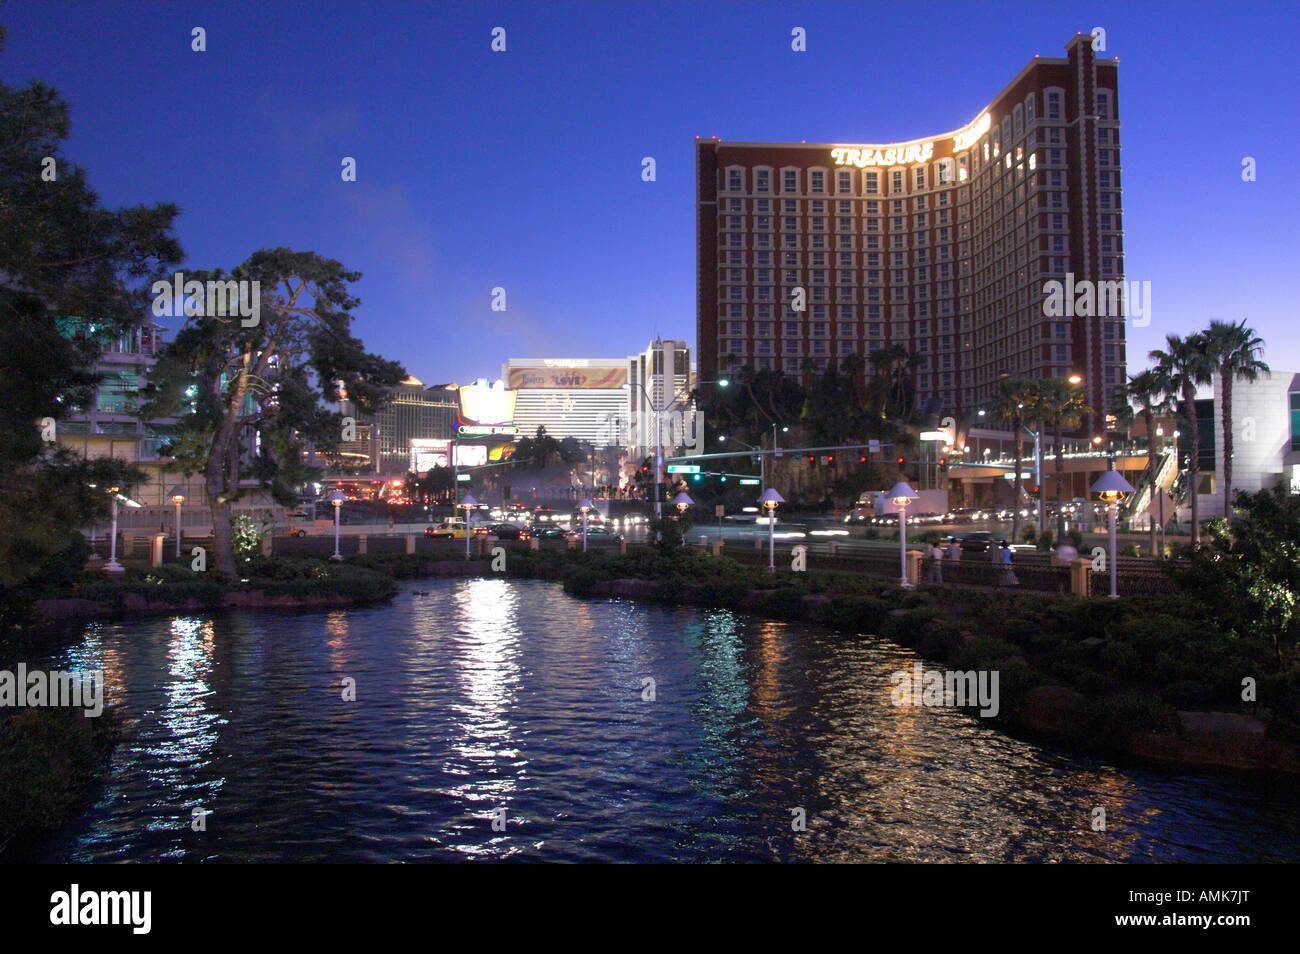 Treasure Island Hotel and Casino with reflections in the lake at dusk on The Strip in Las Vegas Nevada USA - Stock Image